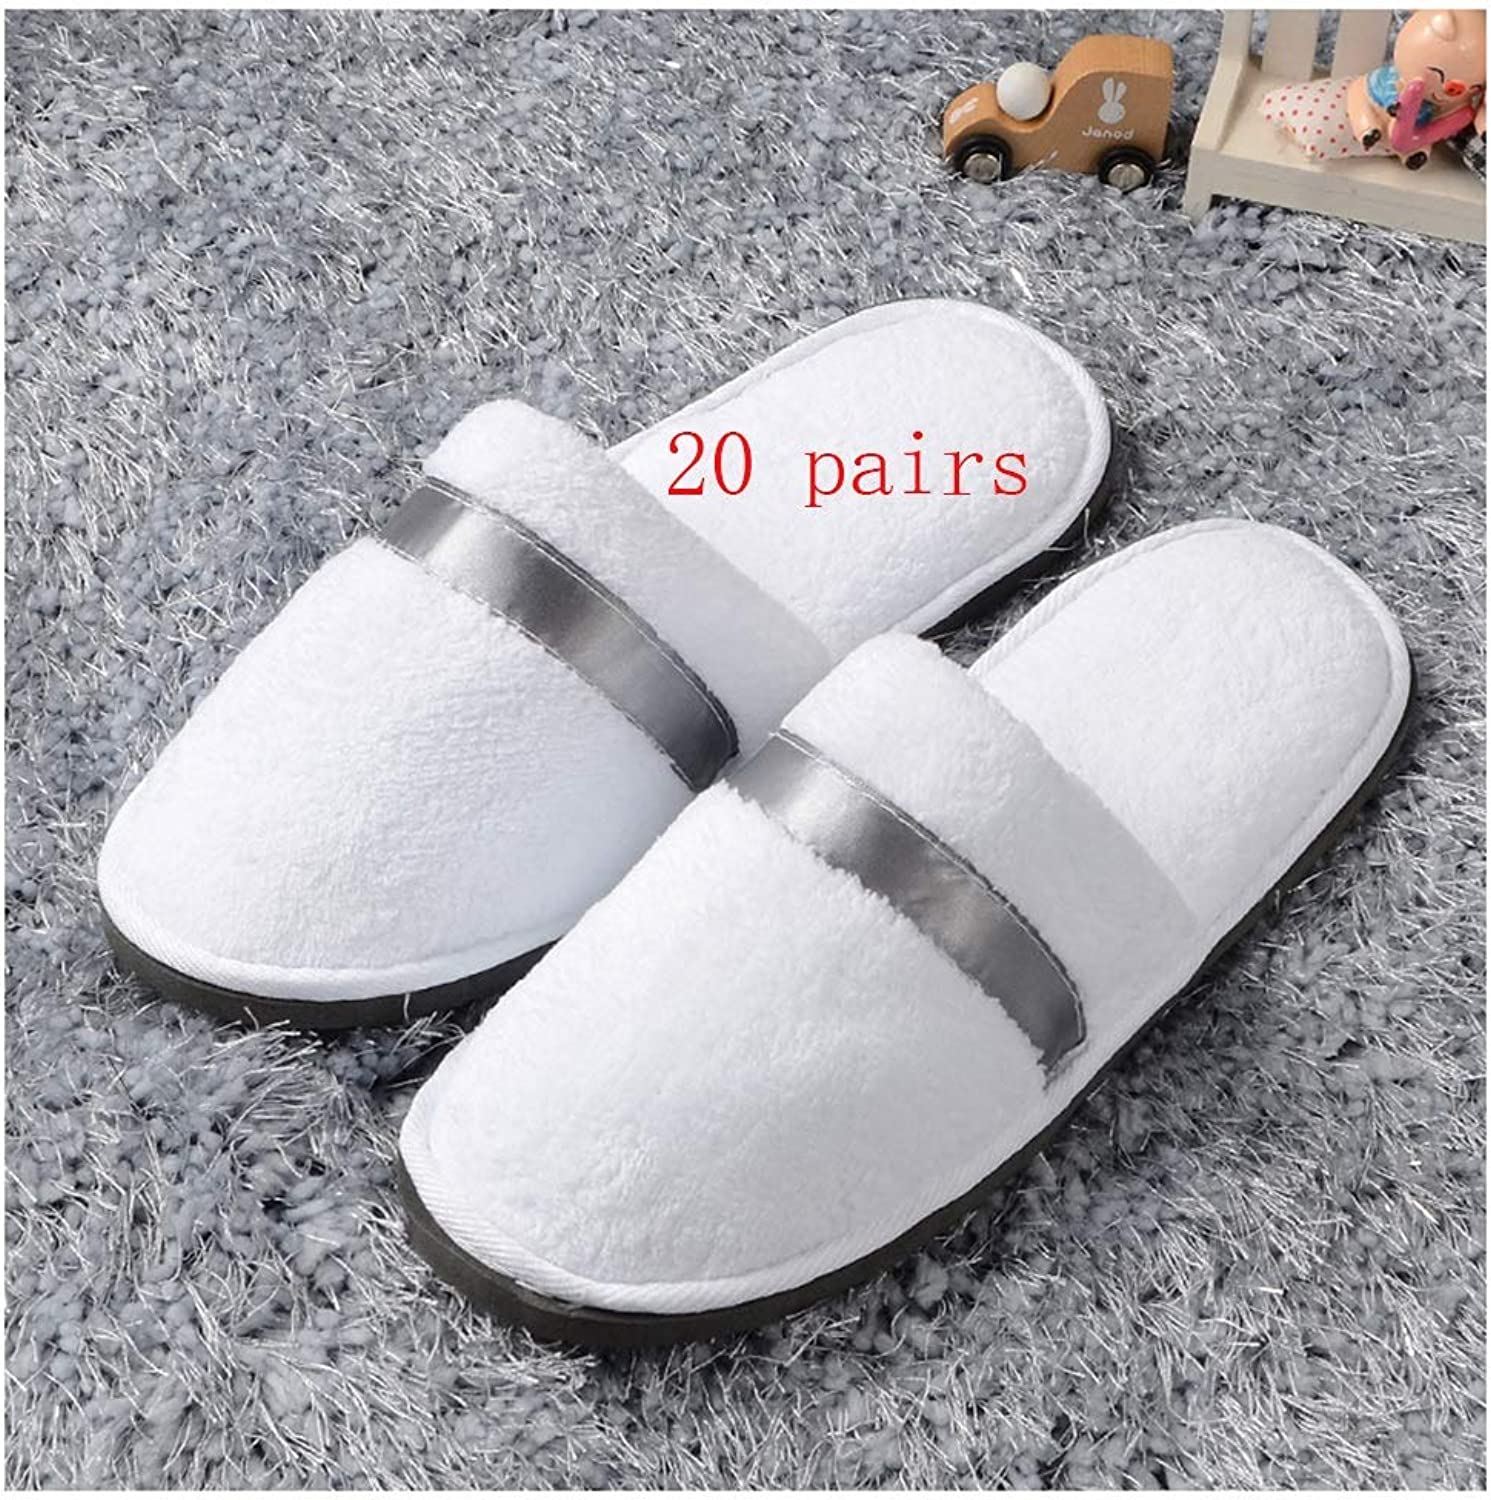 Slippers Women and Men Disposable Portable Spa Slippers Non-Disposable Women's Slippers 20 Pairs of Ladies Slippers Male Hotel Pedicure Slippers Home Hospitality Slippers Thick 4mm Spa-